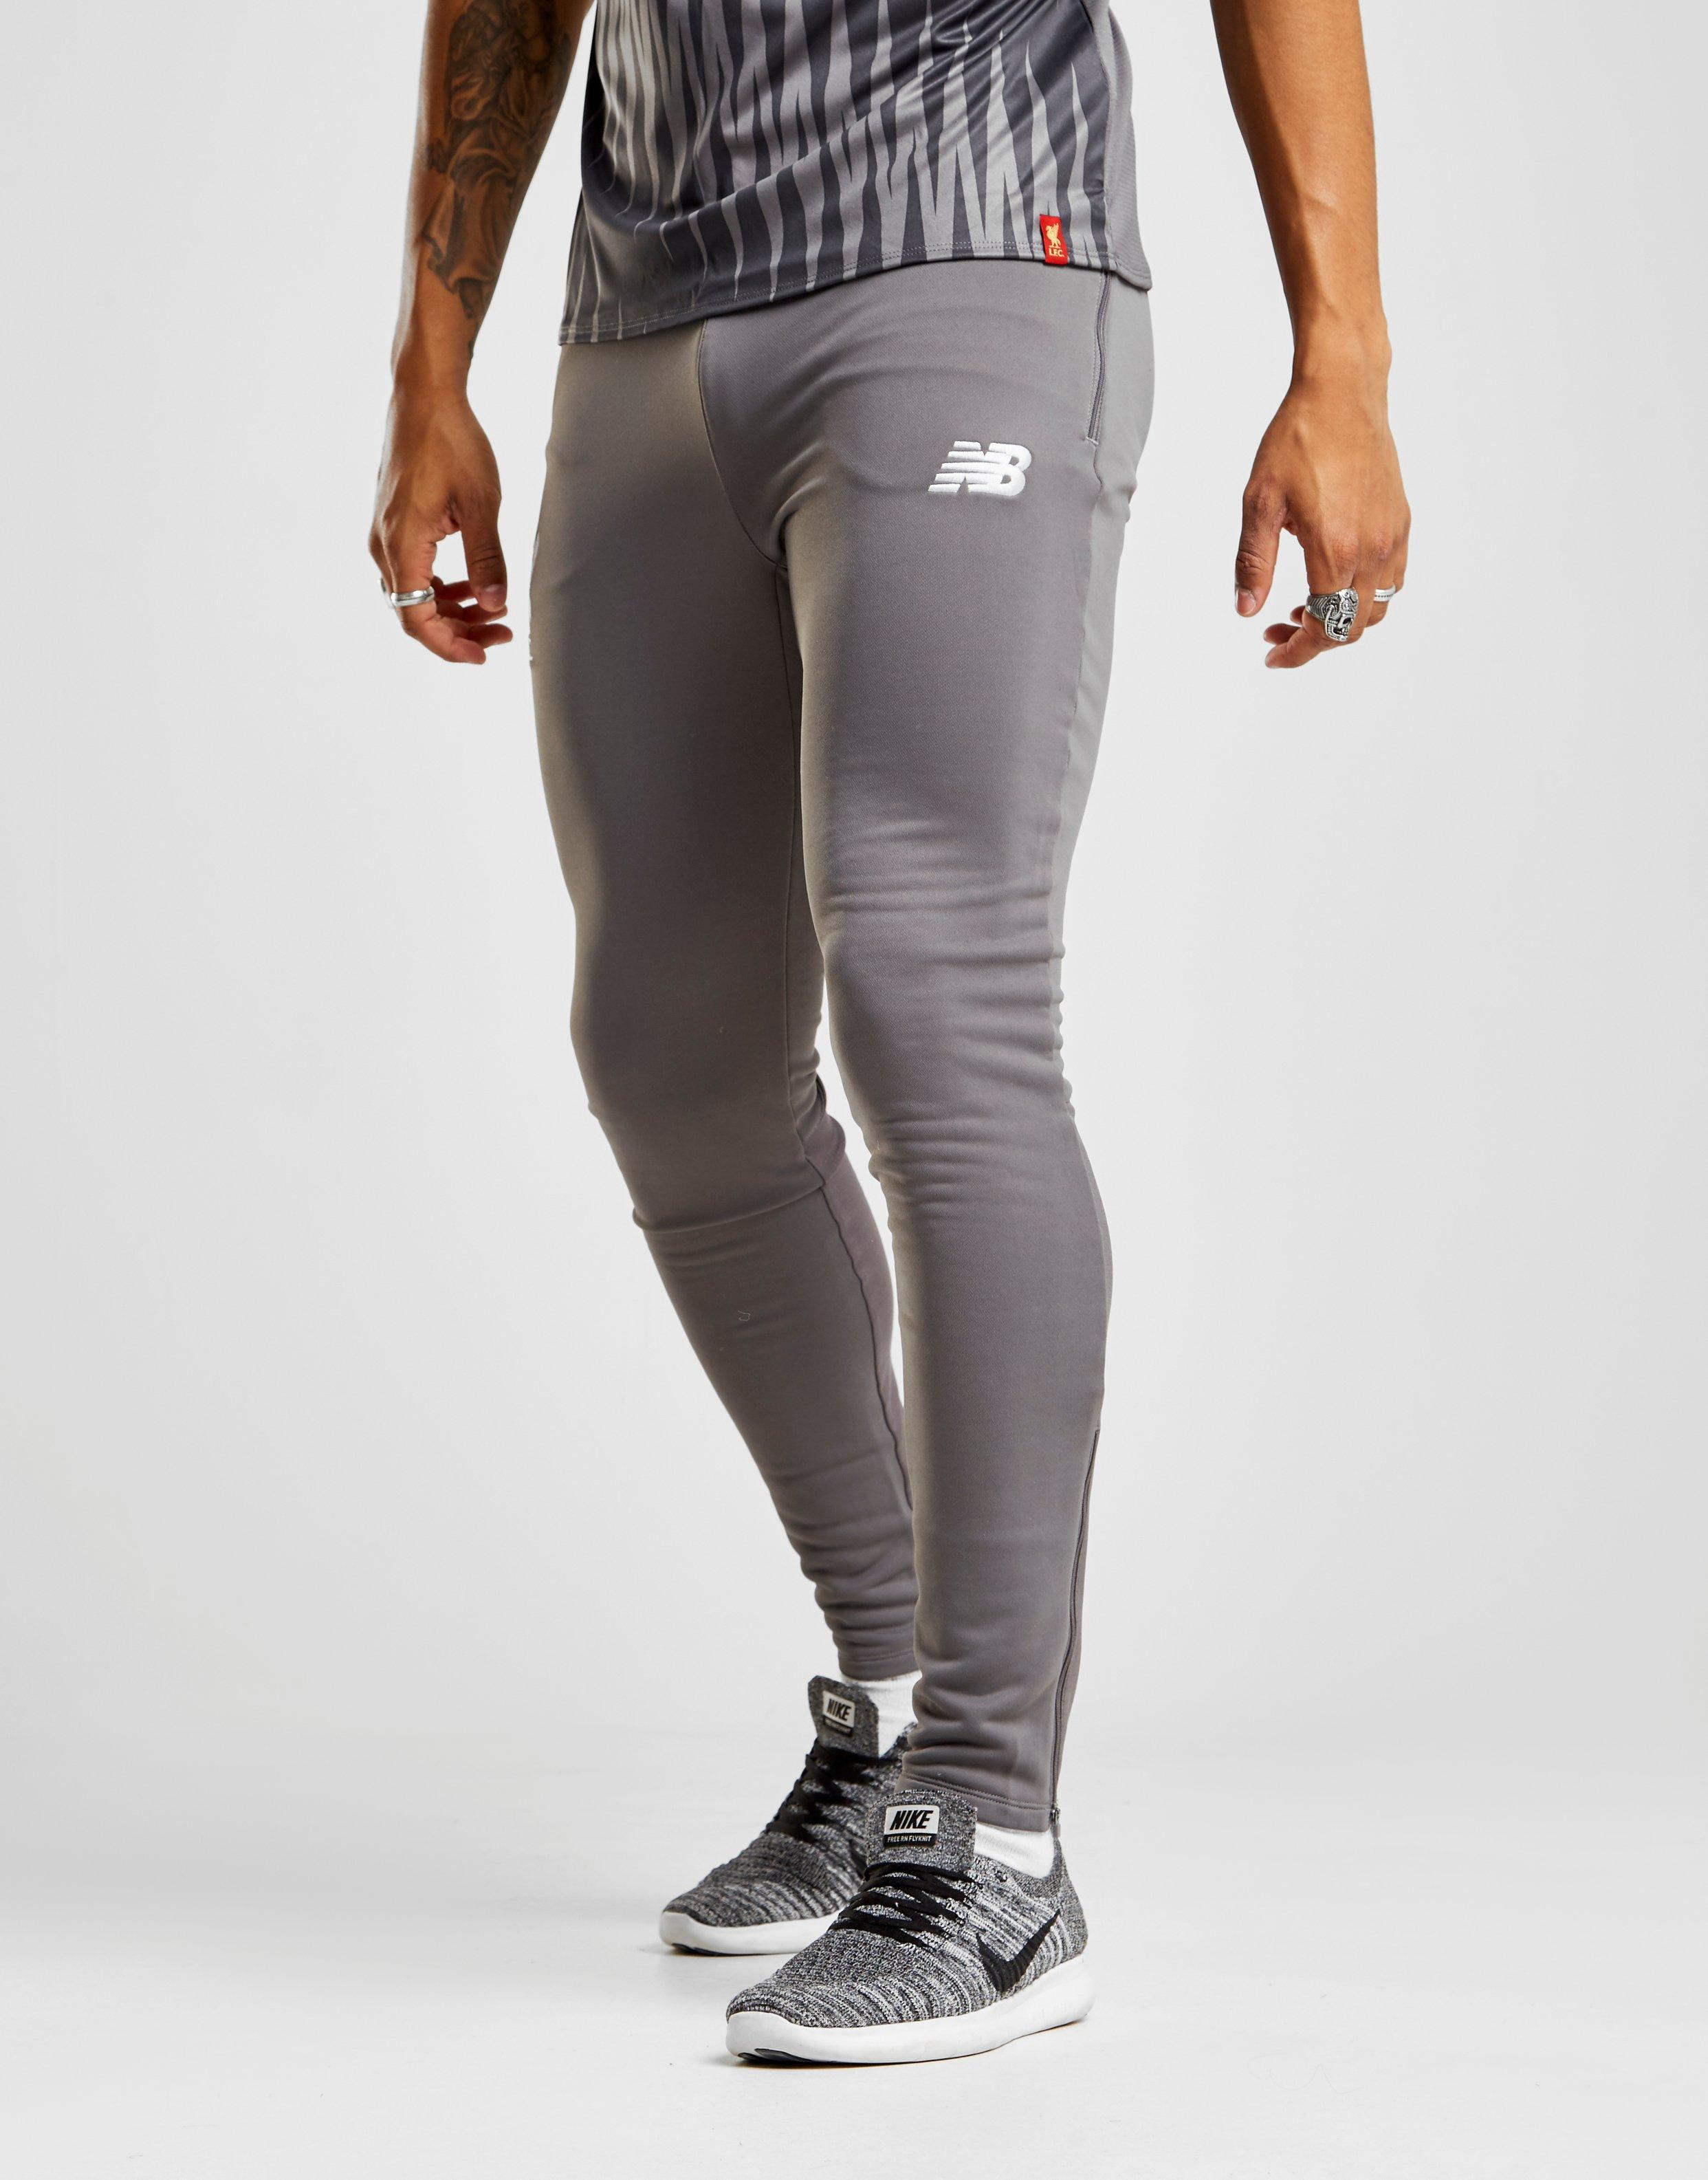 b7d646cad4a66 New Balance Liverpool Fc Tech Pants in Gray for Men - Lyst